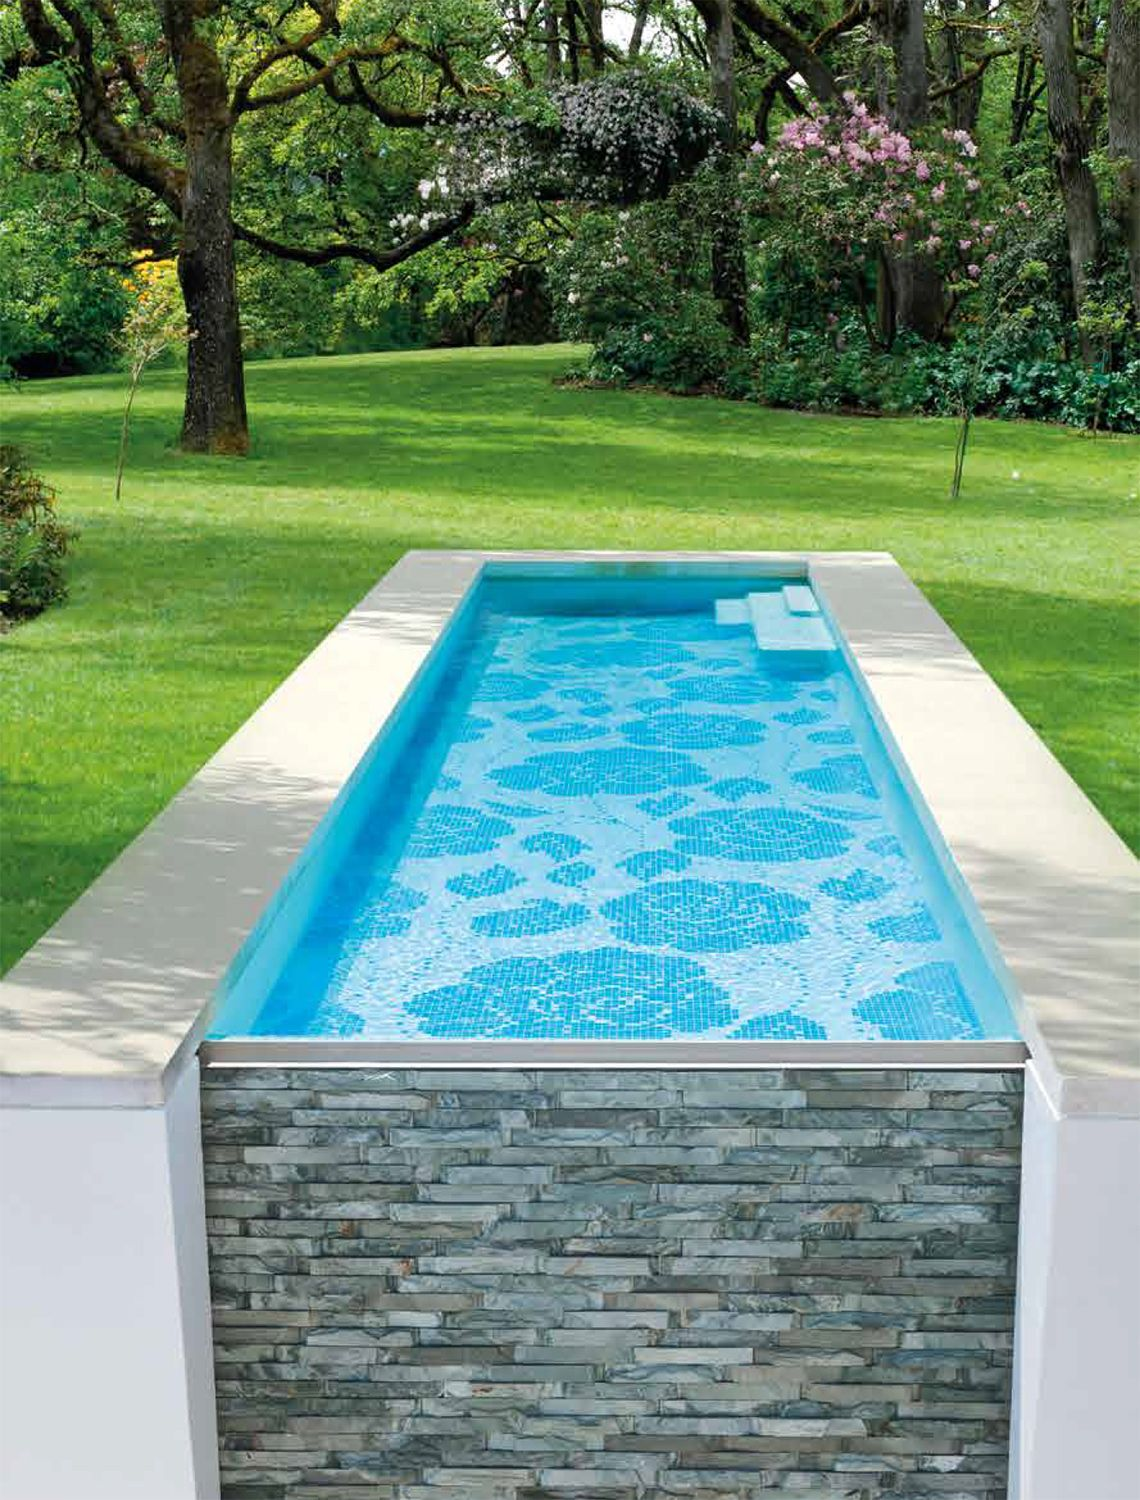 Mosaic Tile Pool Designs shadow green turtles swimming pool tile Pool Mosaic Zante Designed For Bisazza By Carlo Dal Bianco